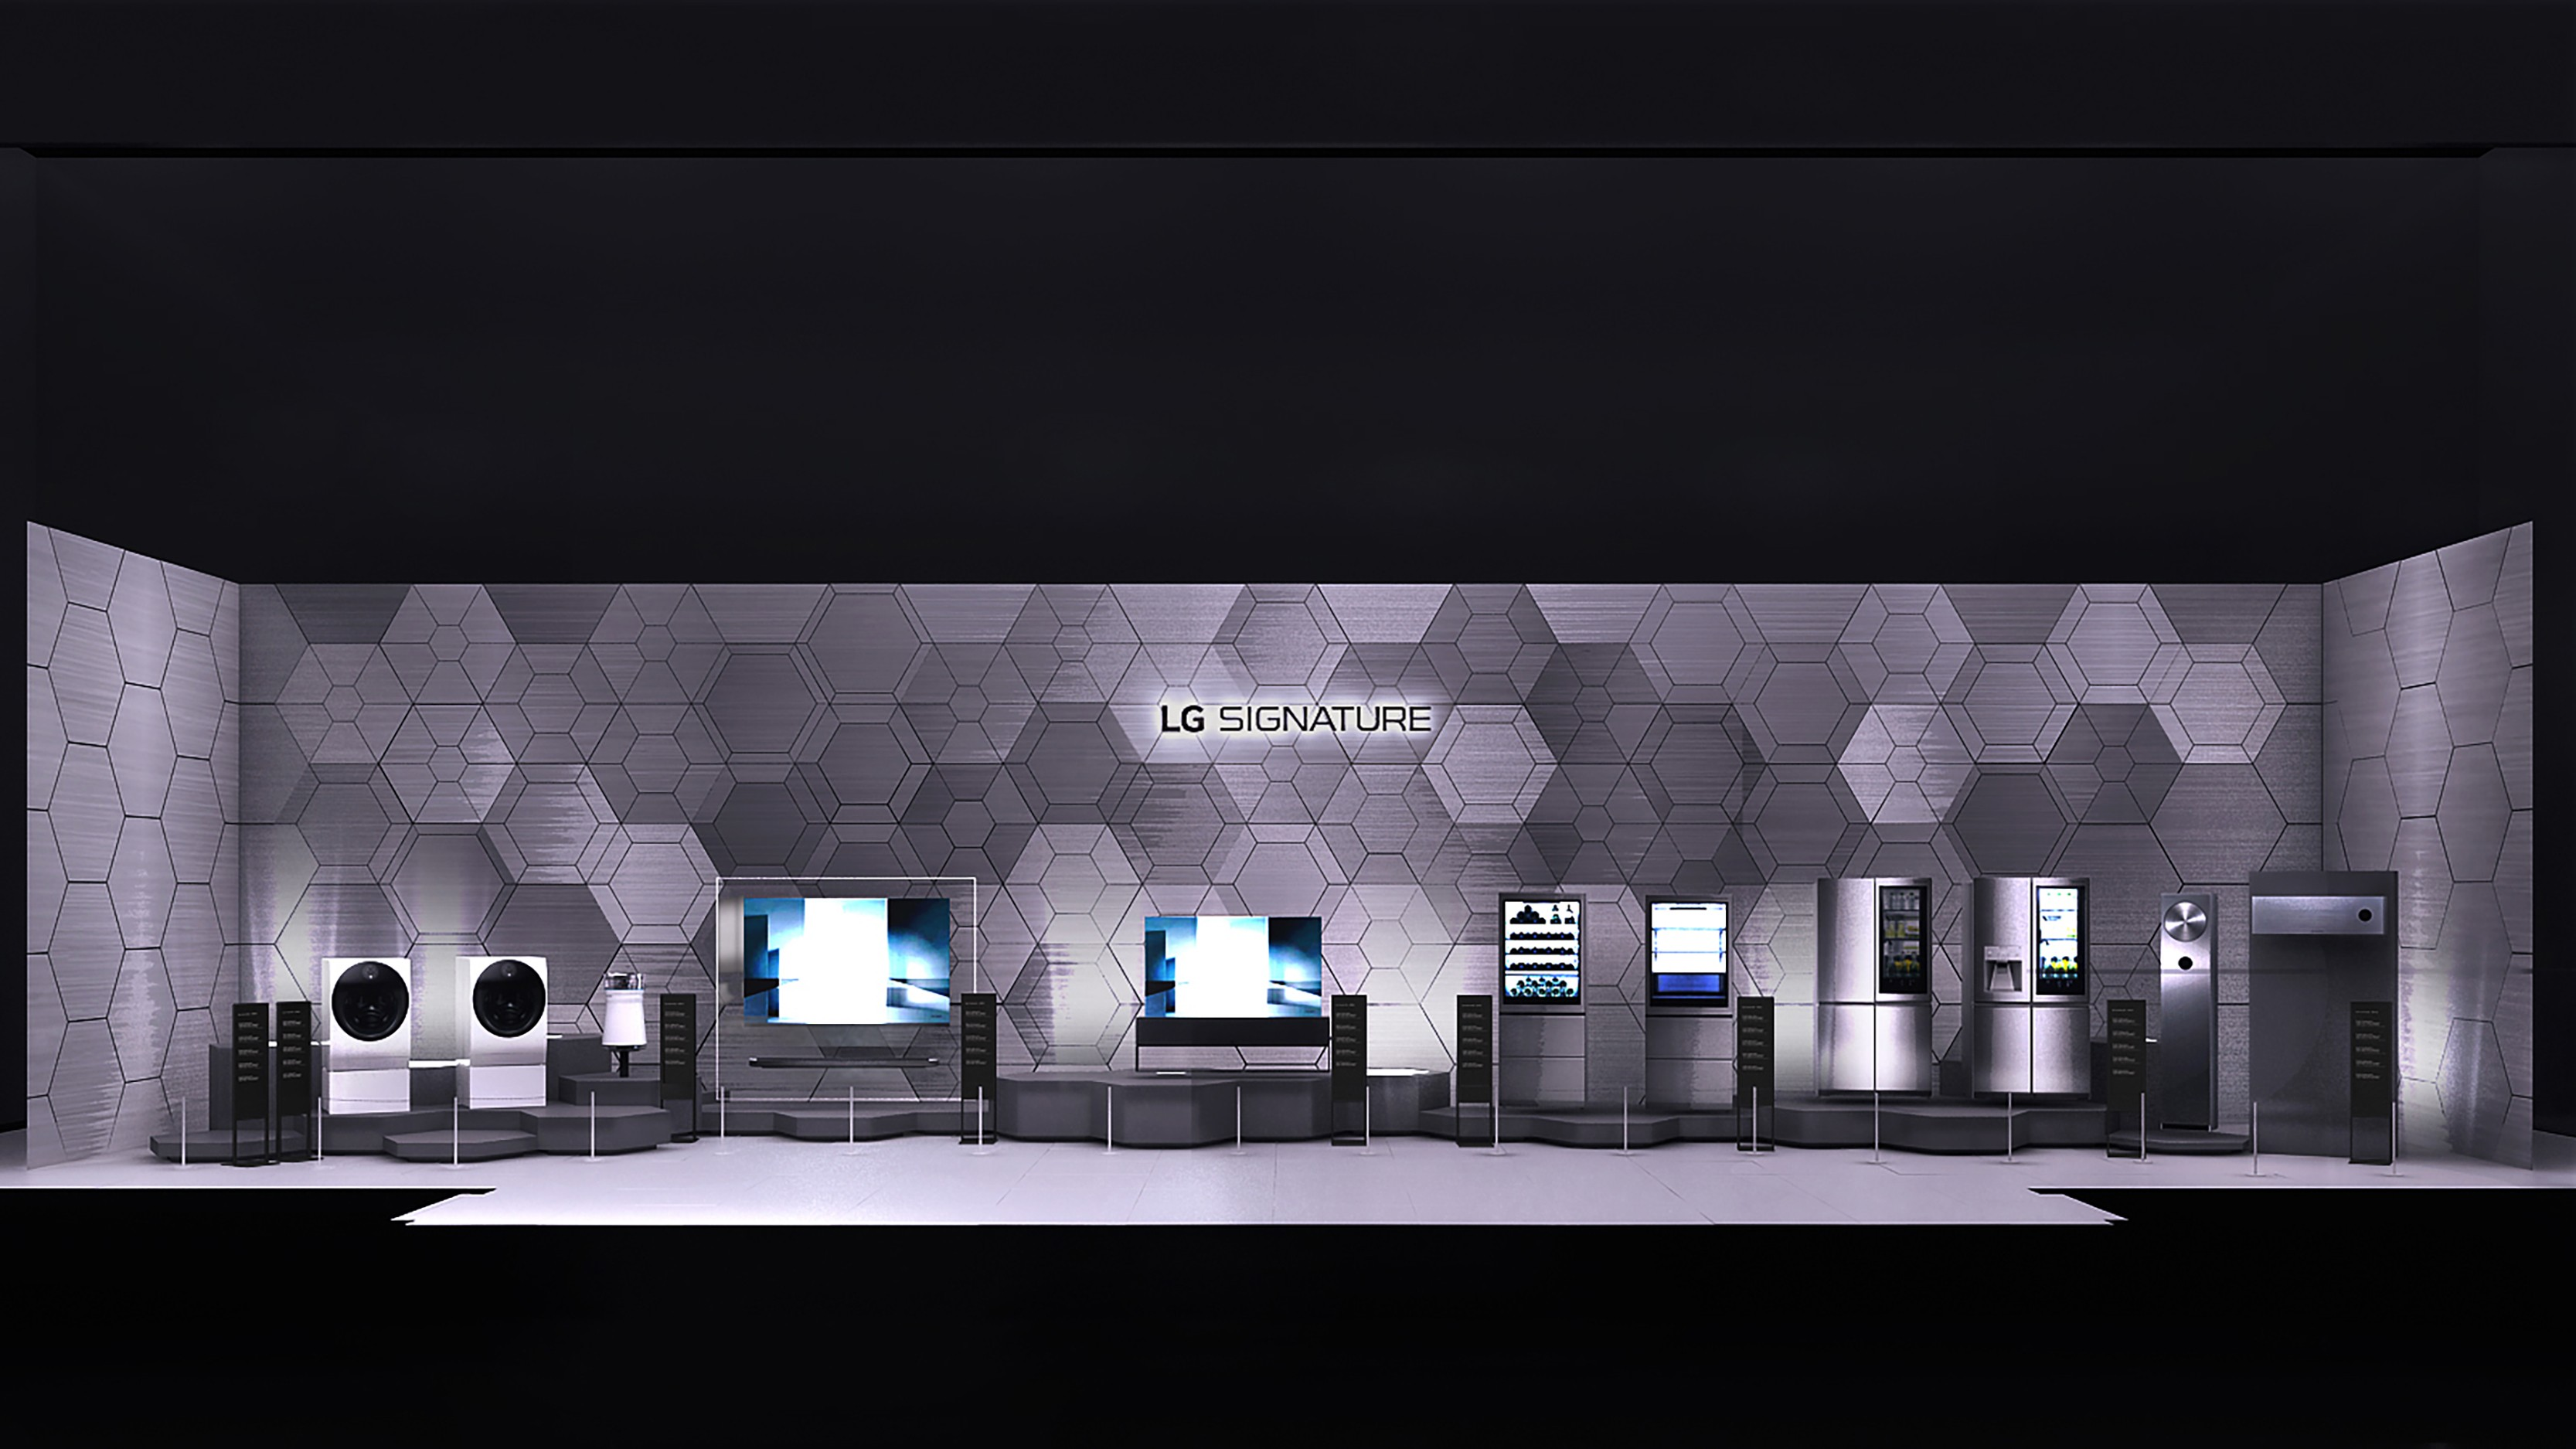 A picture of LG SIGNATURE's product lineup at the booth at IFA 2019.